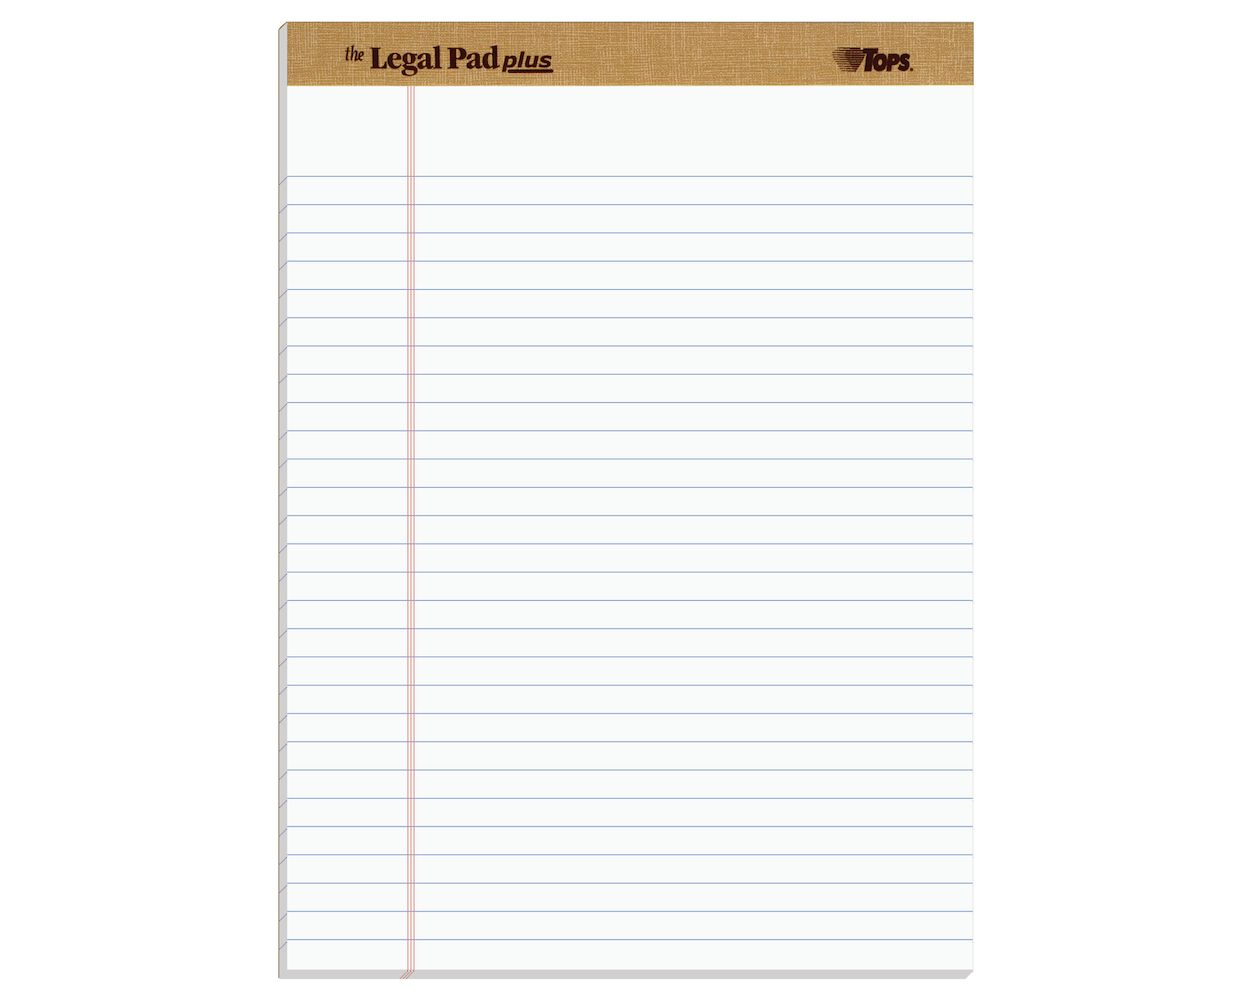 TOPS The Legal Pad Legal Pad 7500 5 x 8 12 Pads per Pack Narrow Rule Perforated White 50 Sheets per Pad